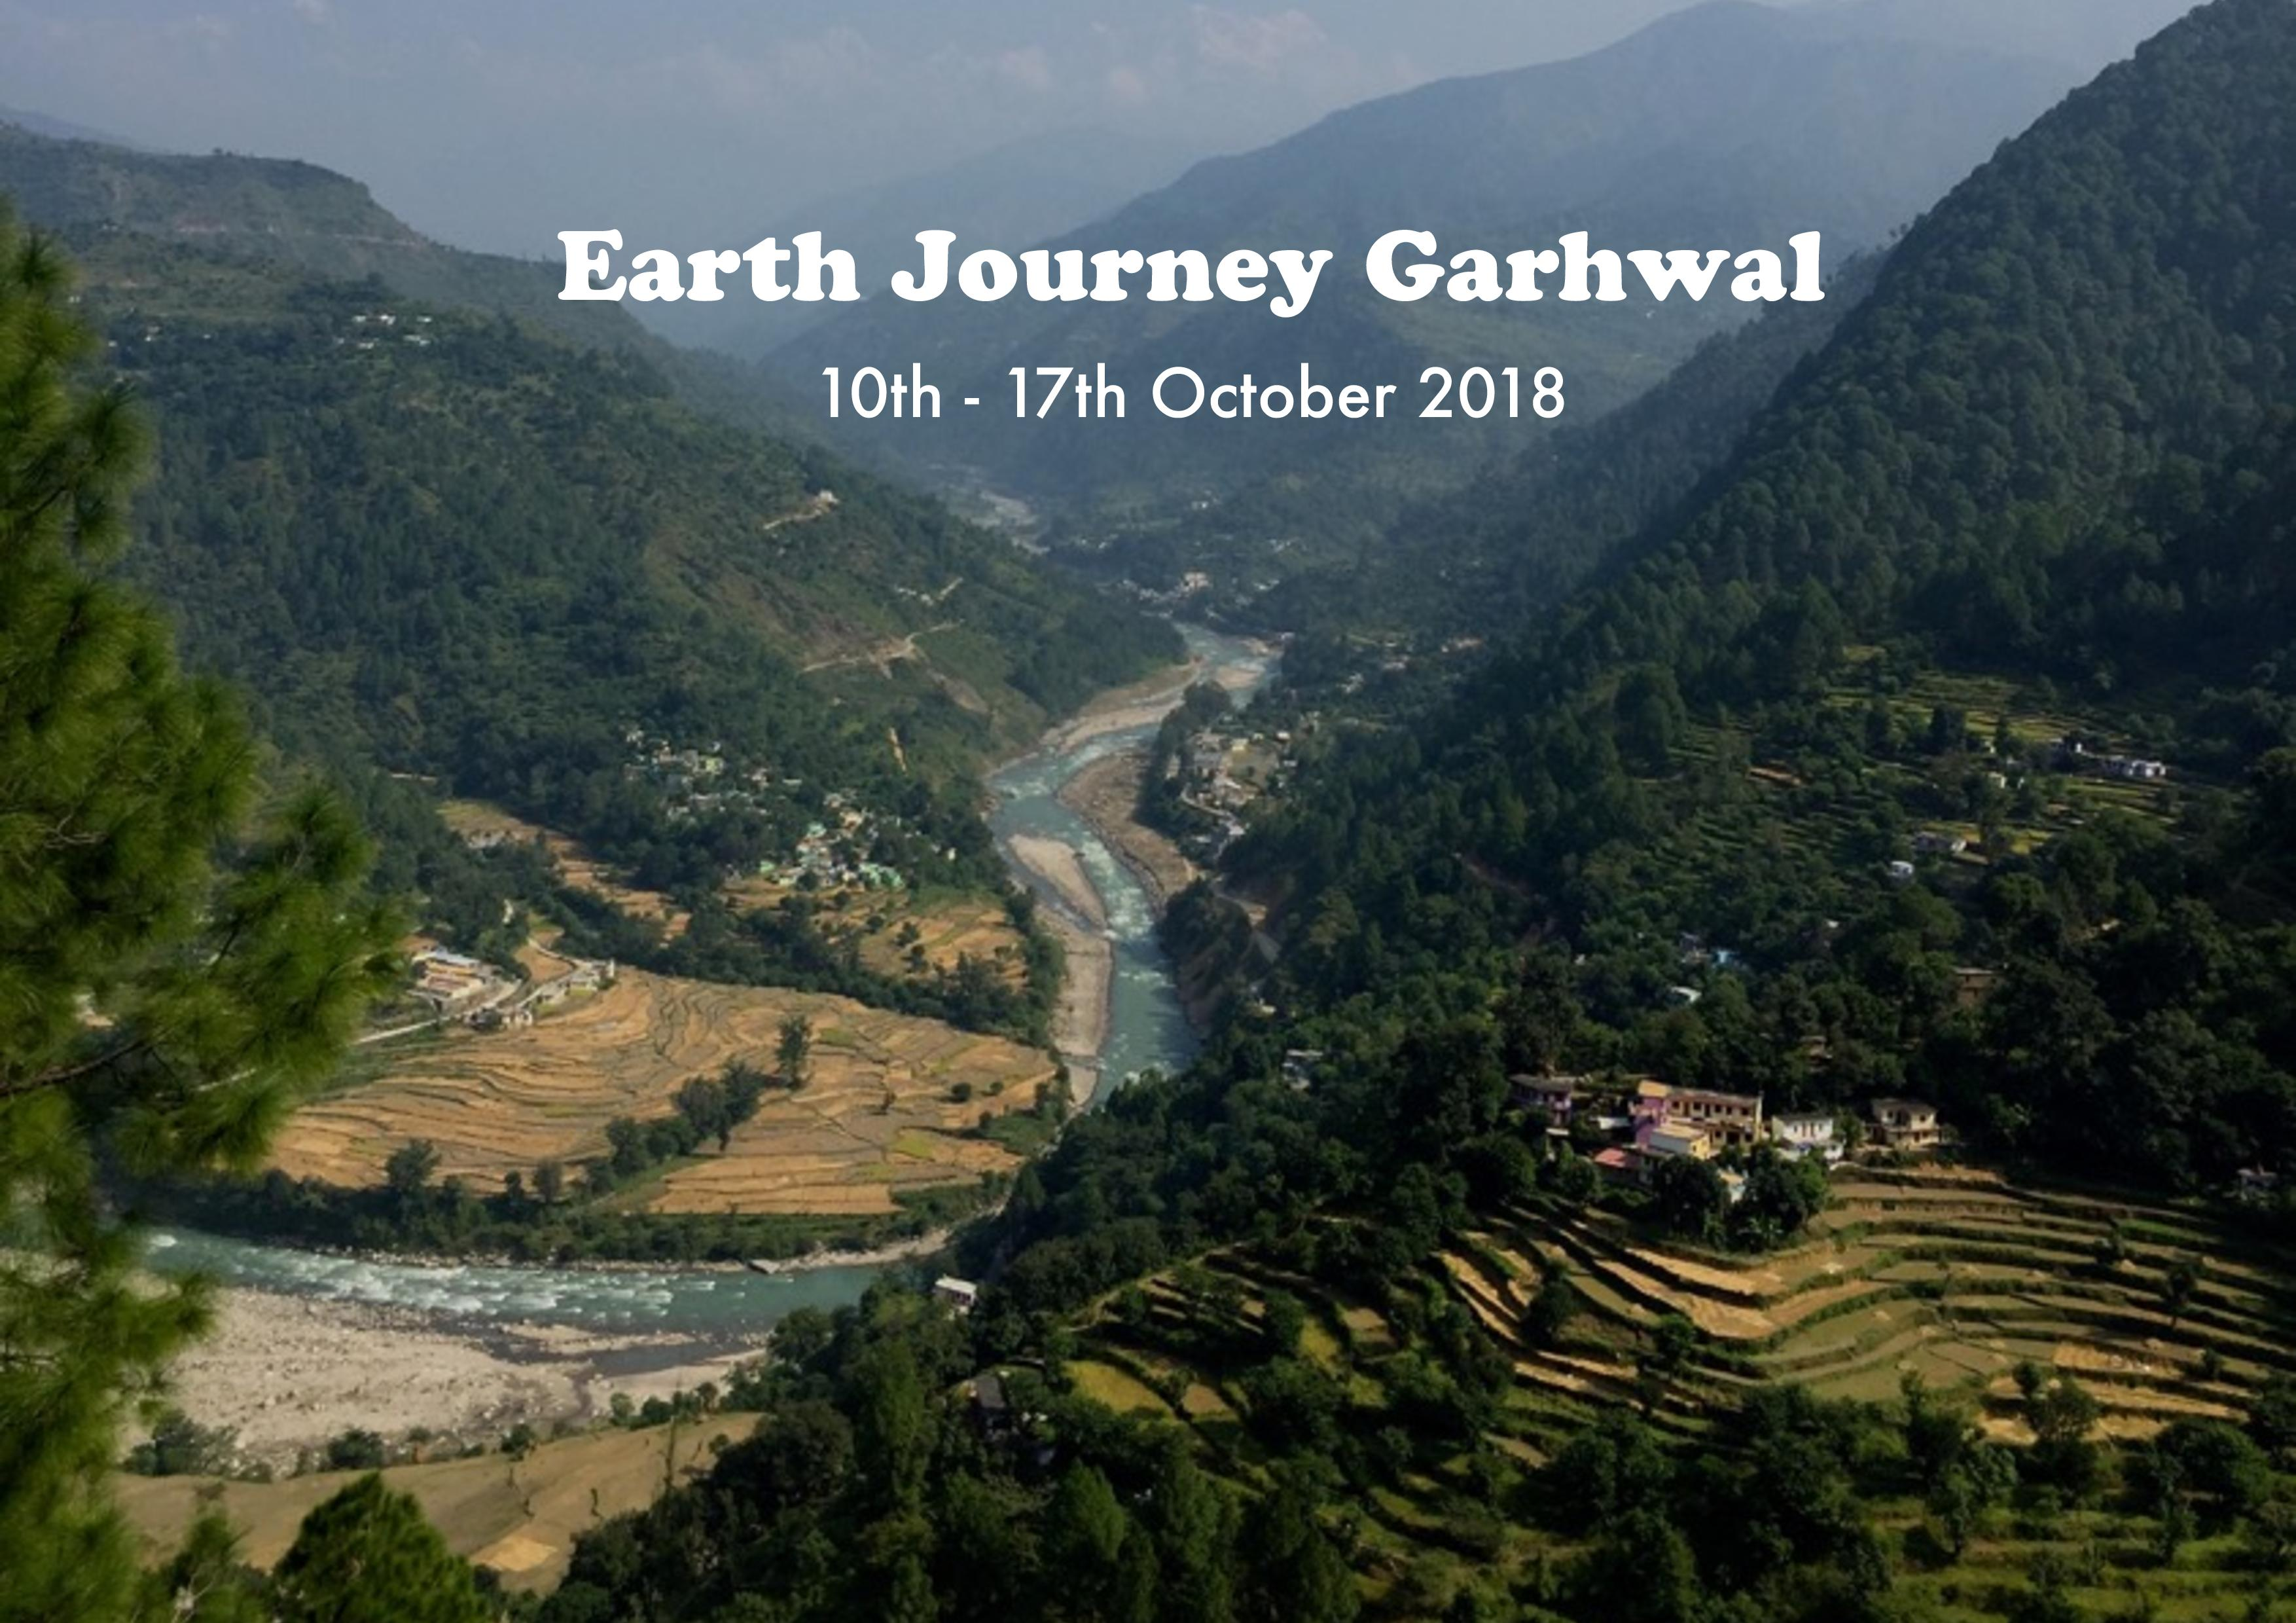 Earth Journey to Garhwal